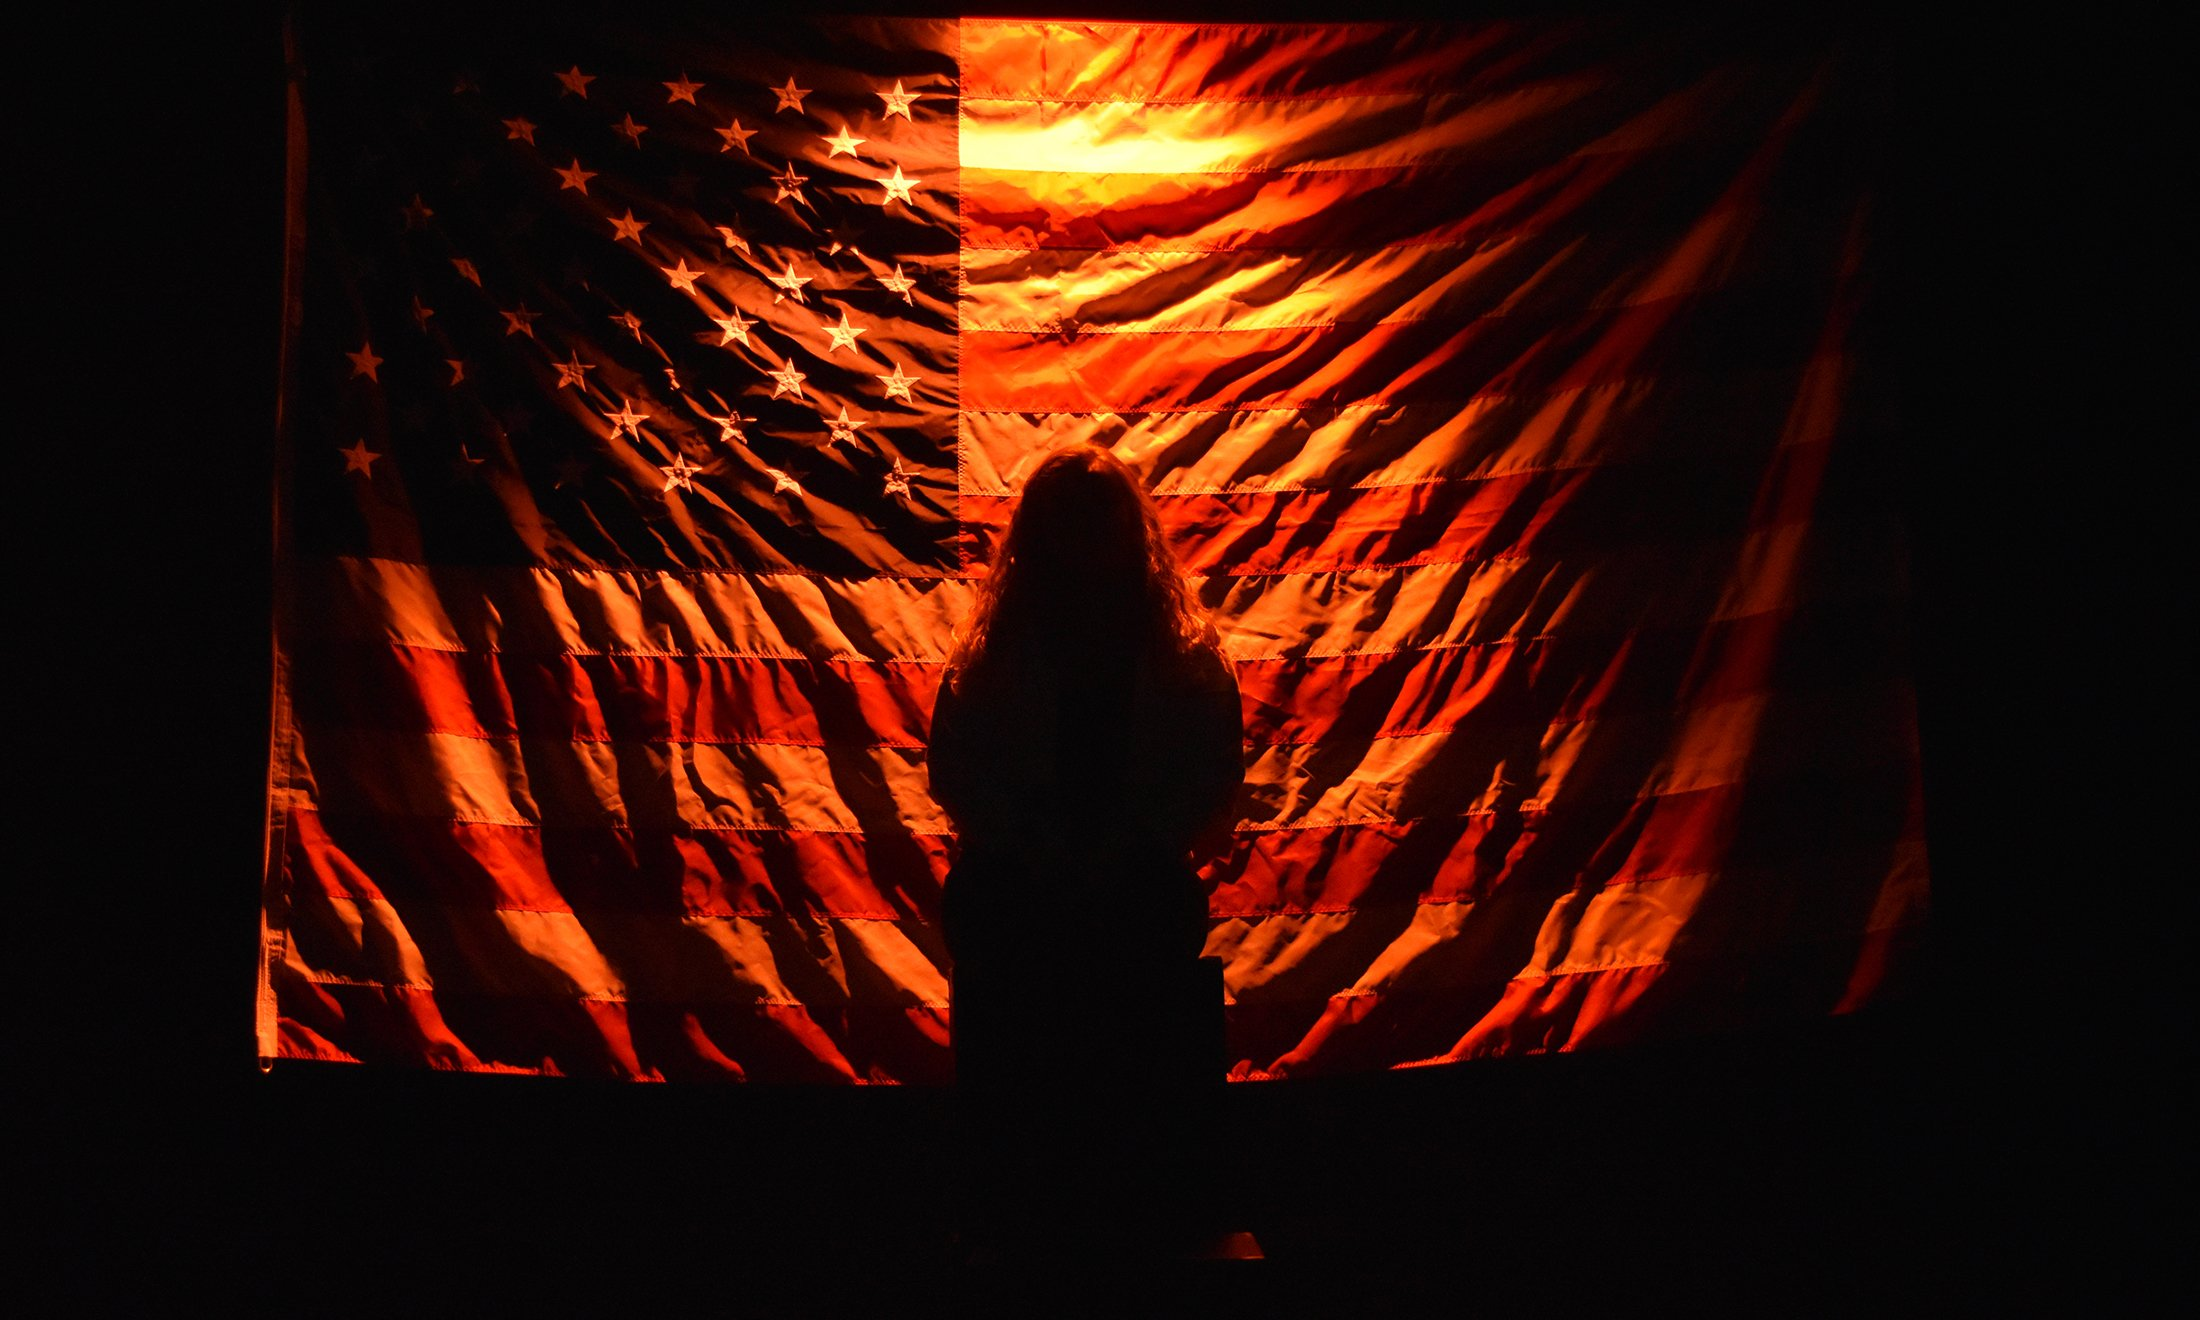 A silhouette of a person in front of the USA flag.